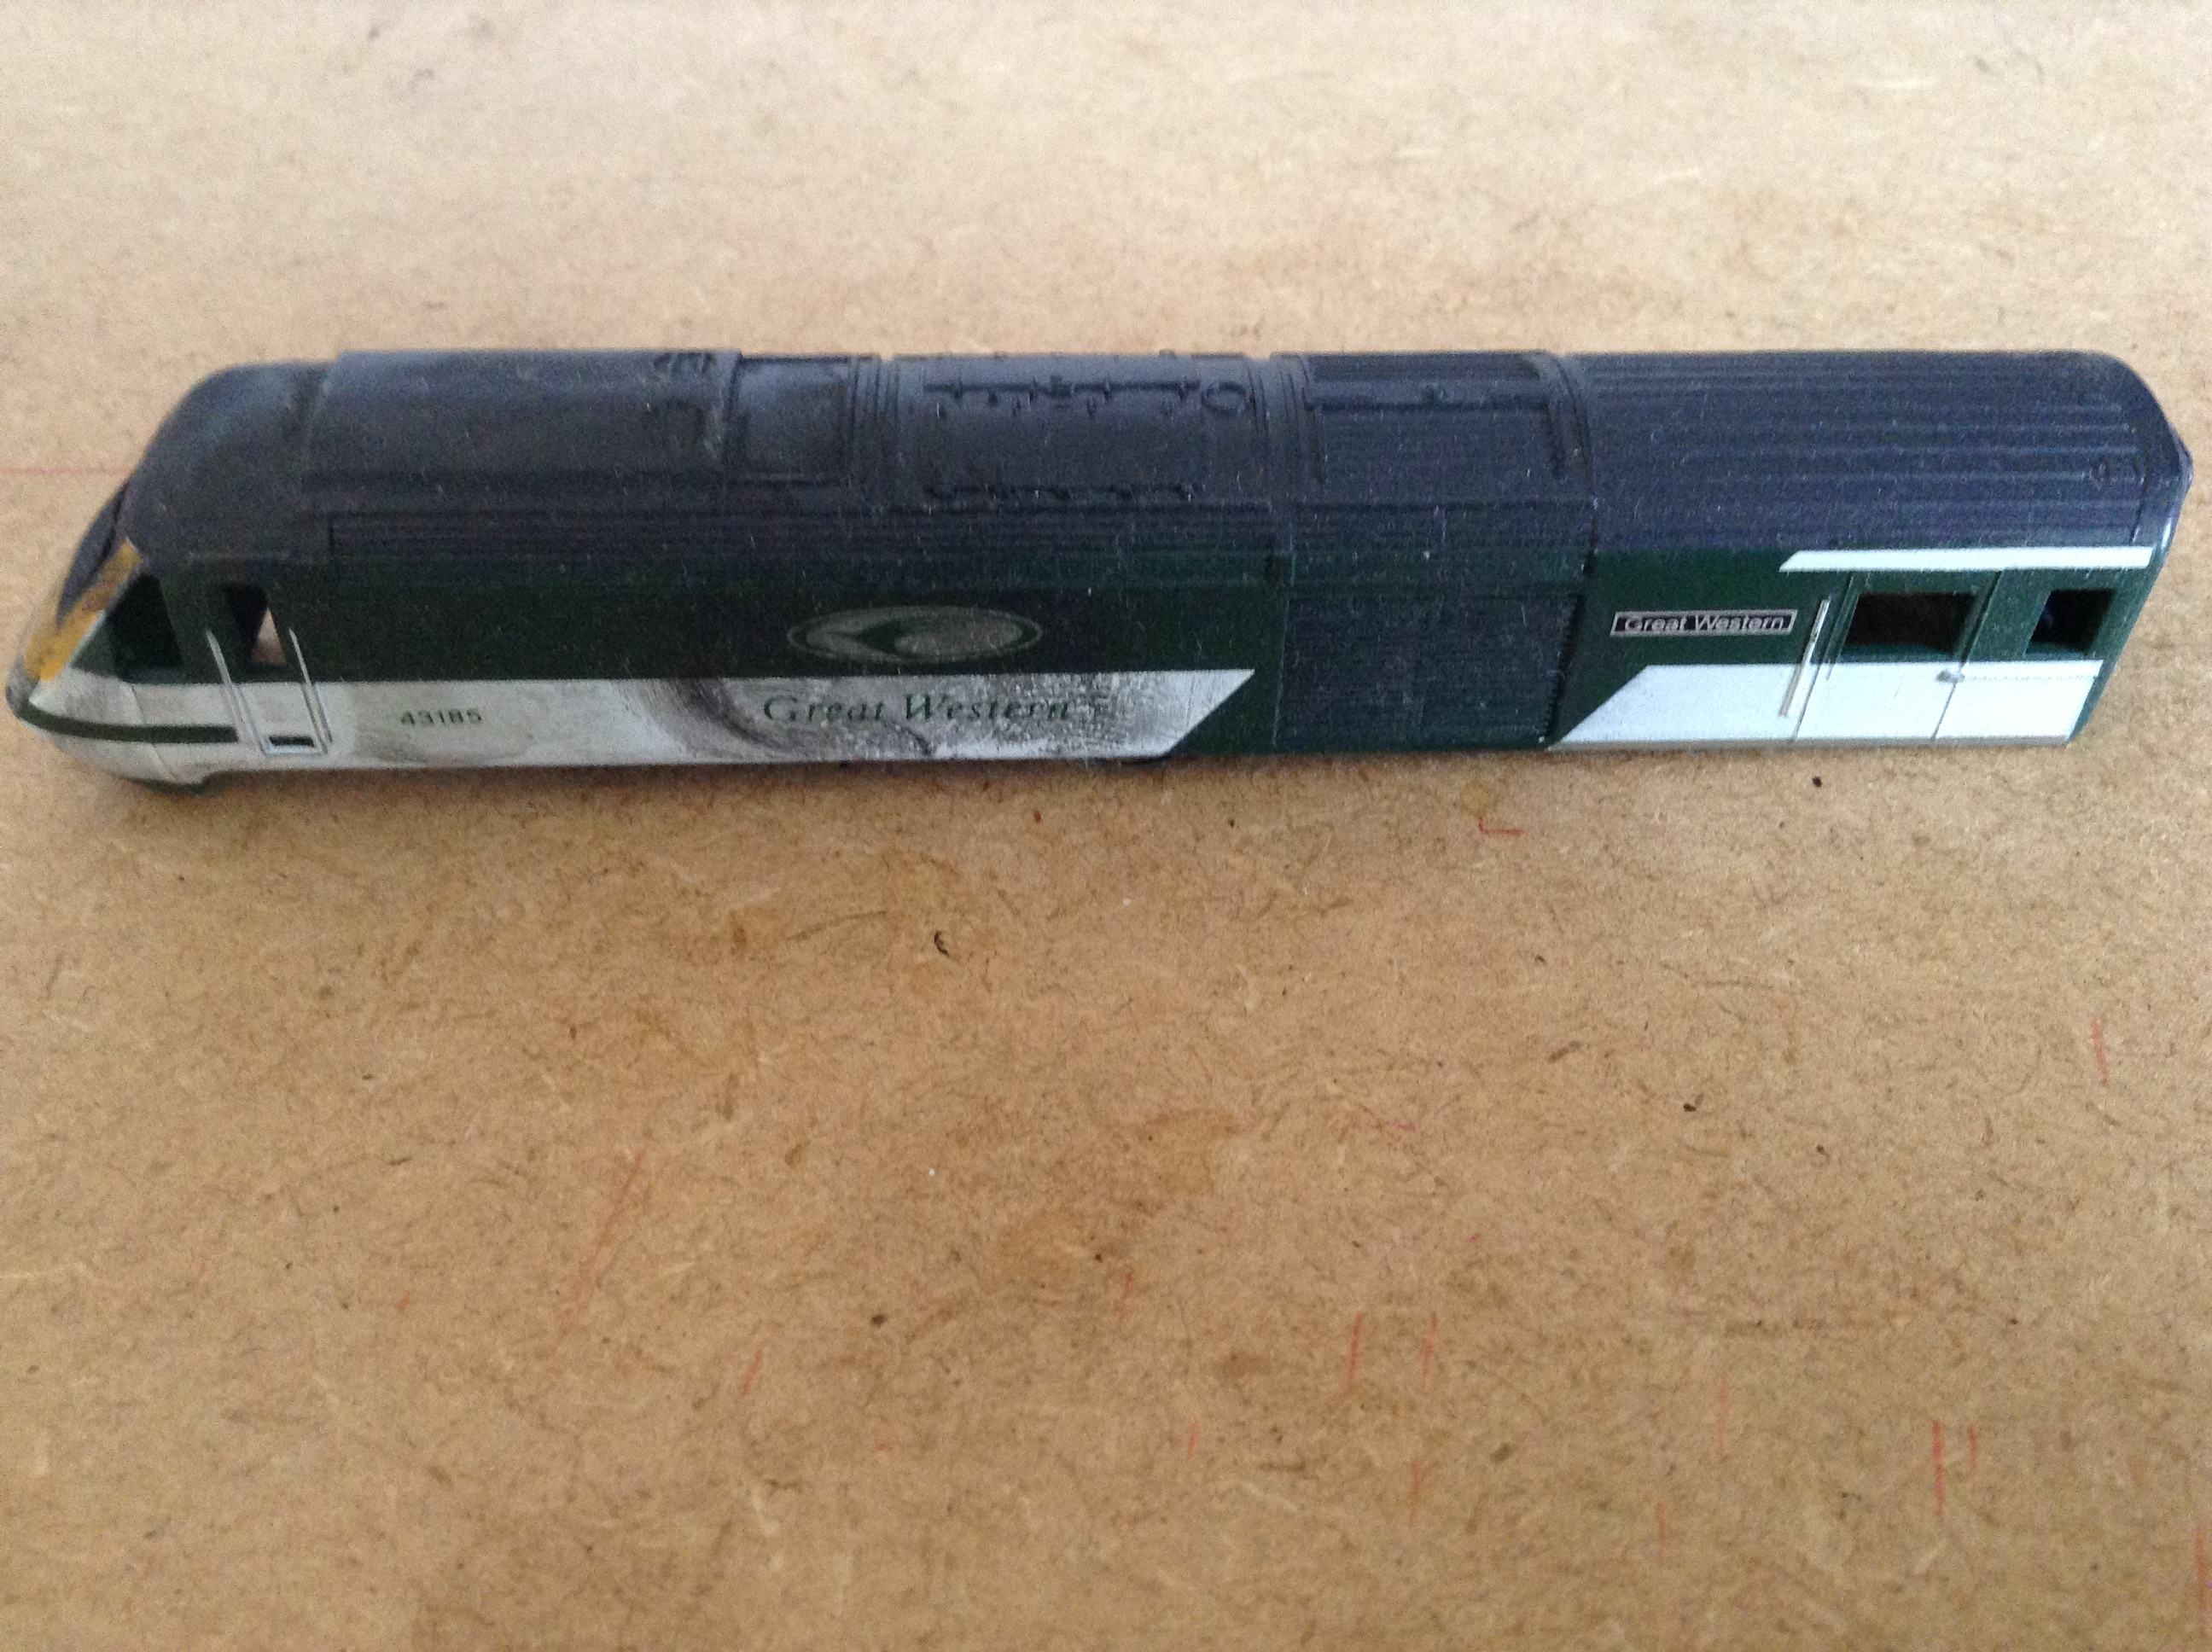 HST Power car 43185 Great Western Weathered